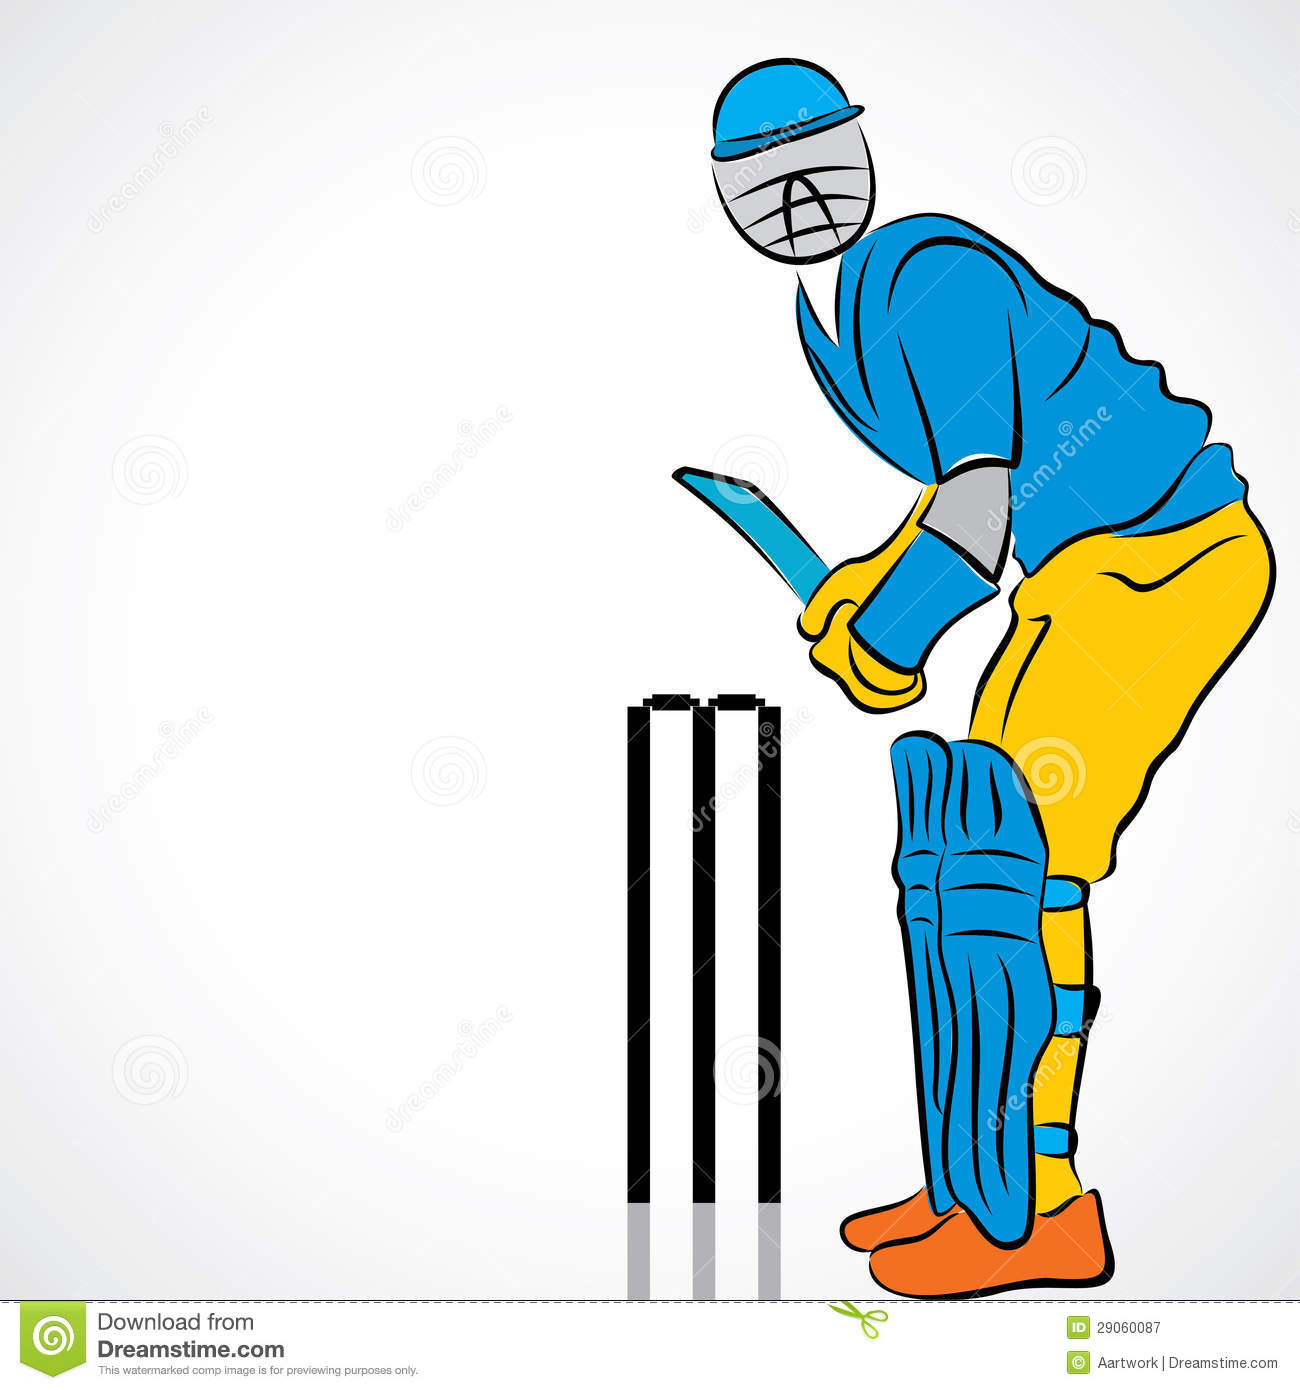 how to play uppercut in cricket